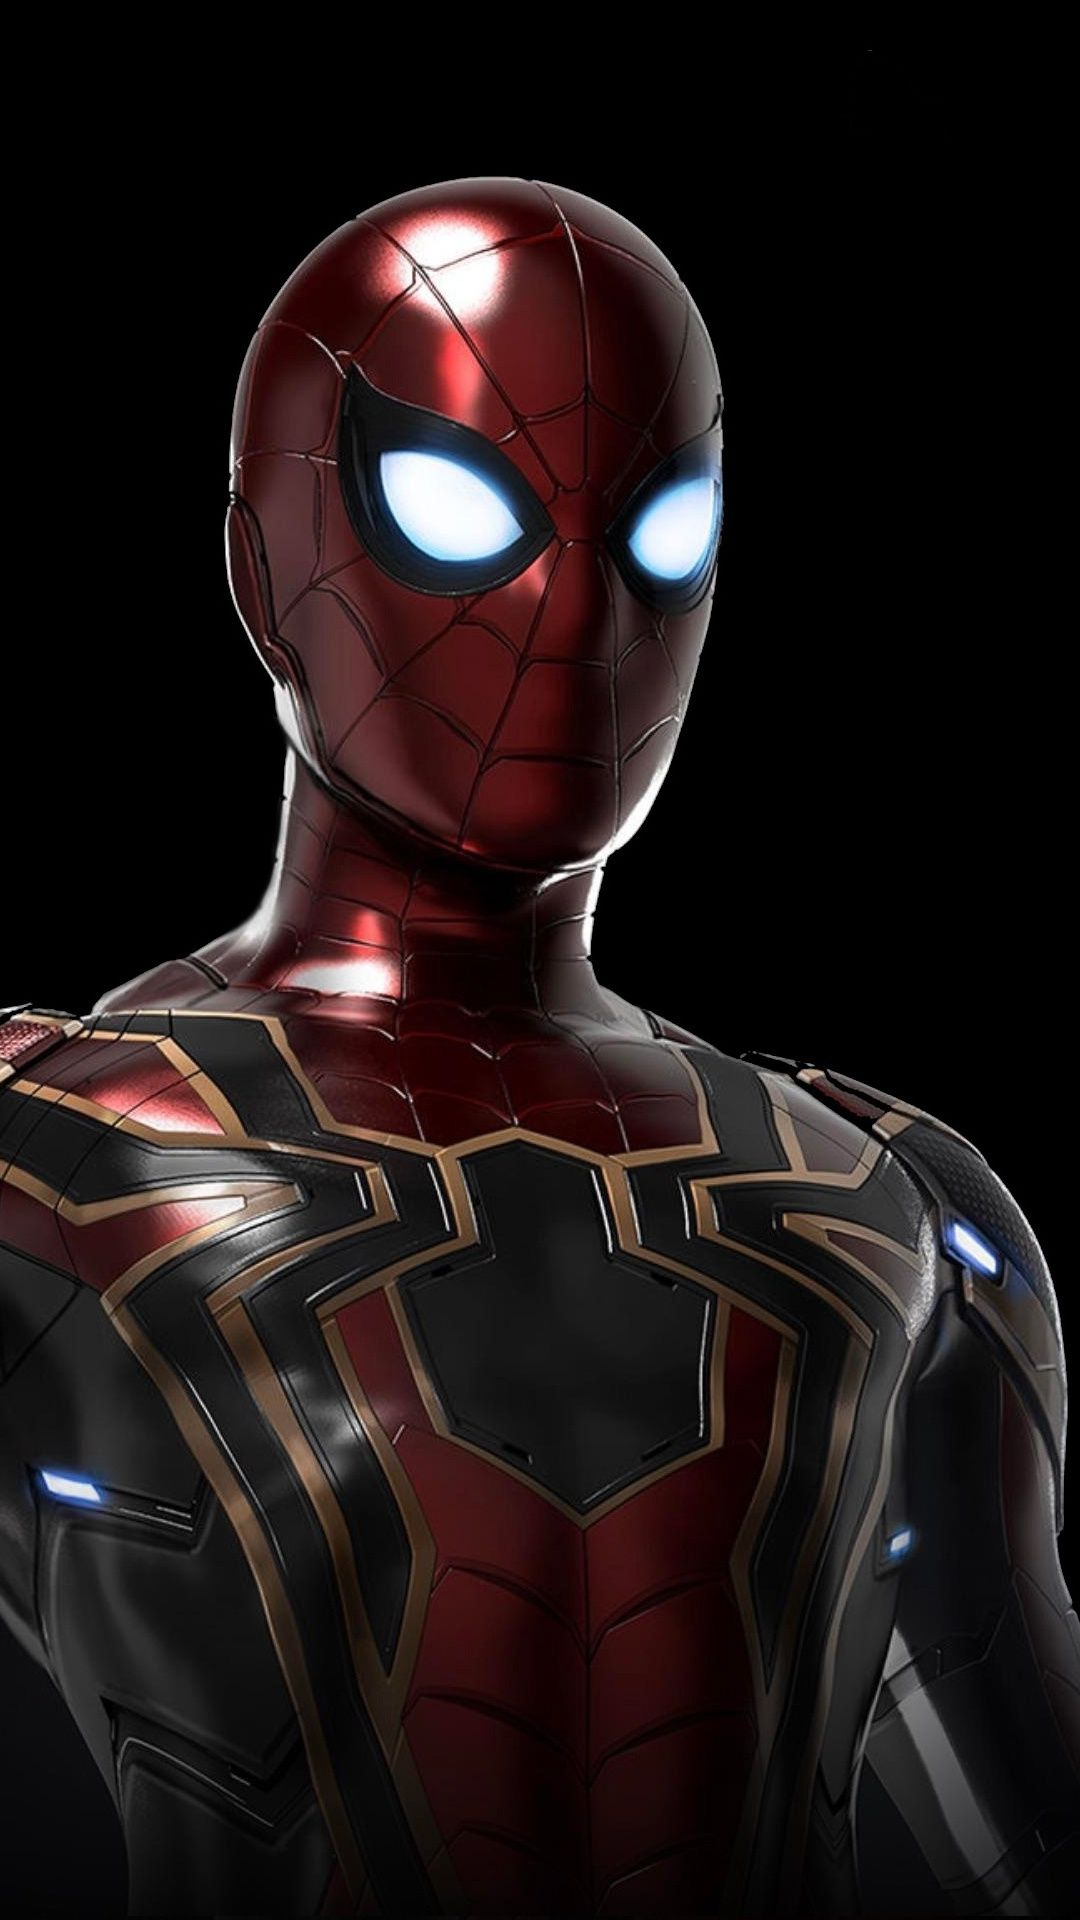 Ironspider, Avengers Infinity War, movie, artwork